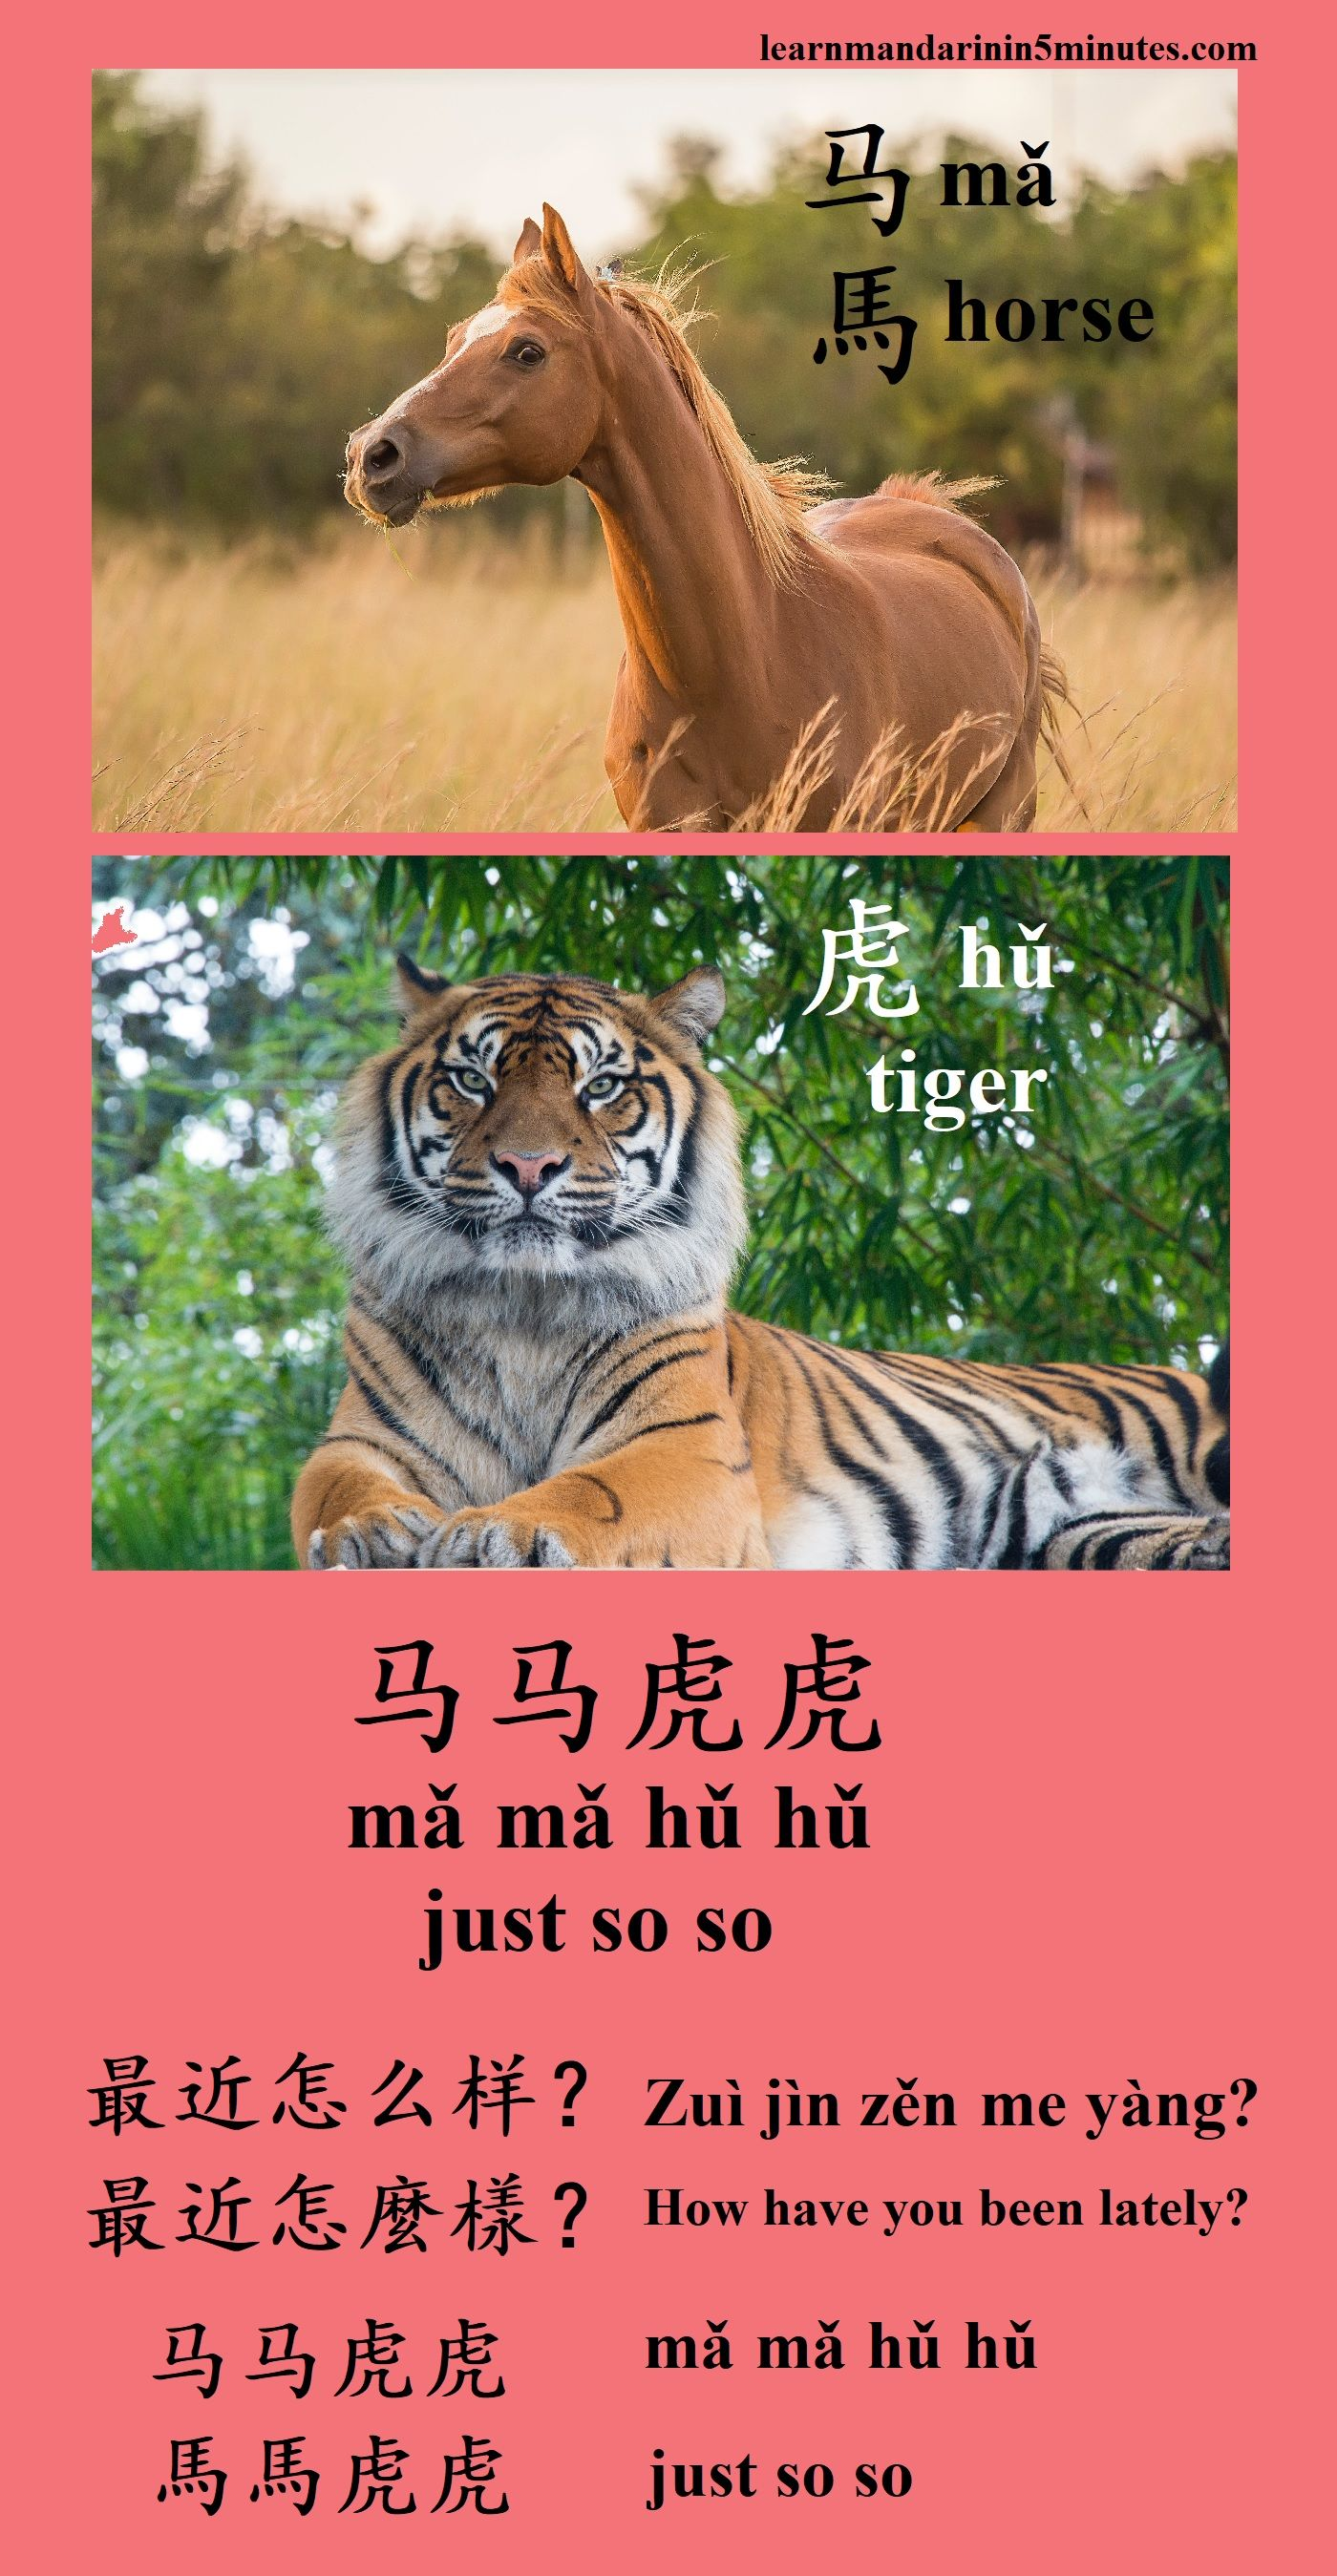 Chinese Polite Words And Expressions You Should Know